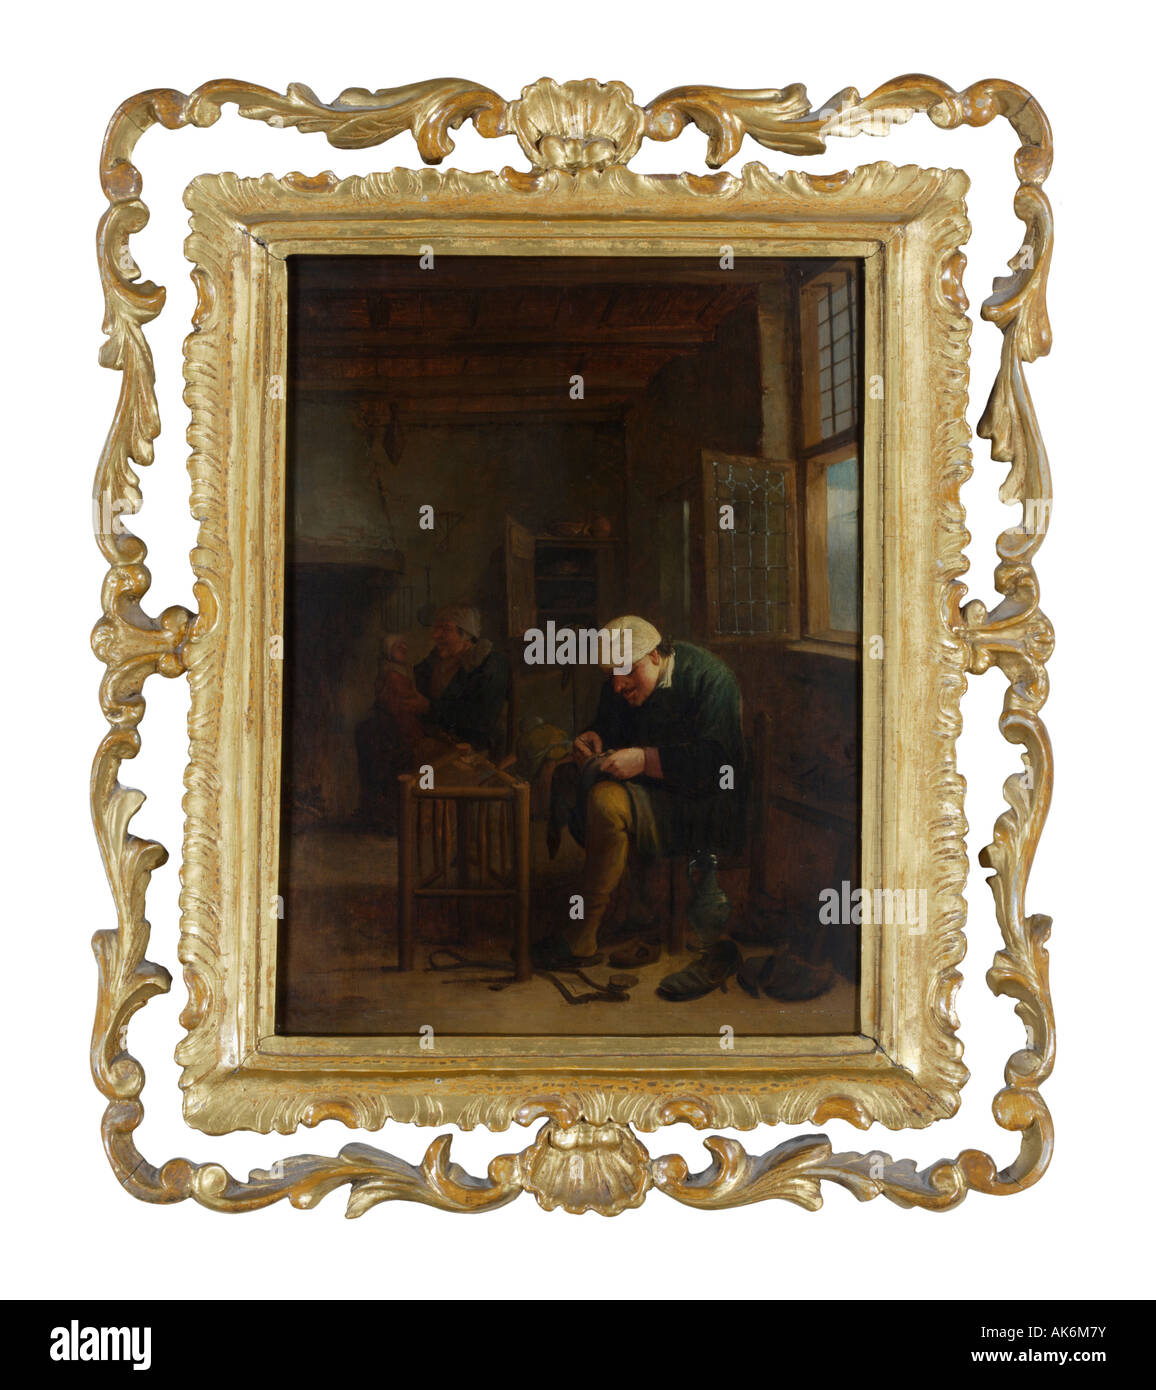 Circa 1658 Dutch oil painting in a gold wood frame - Stock Image